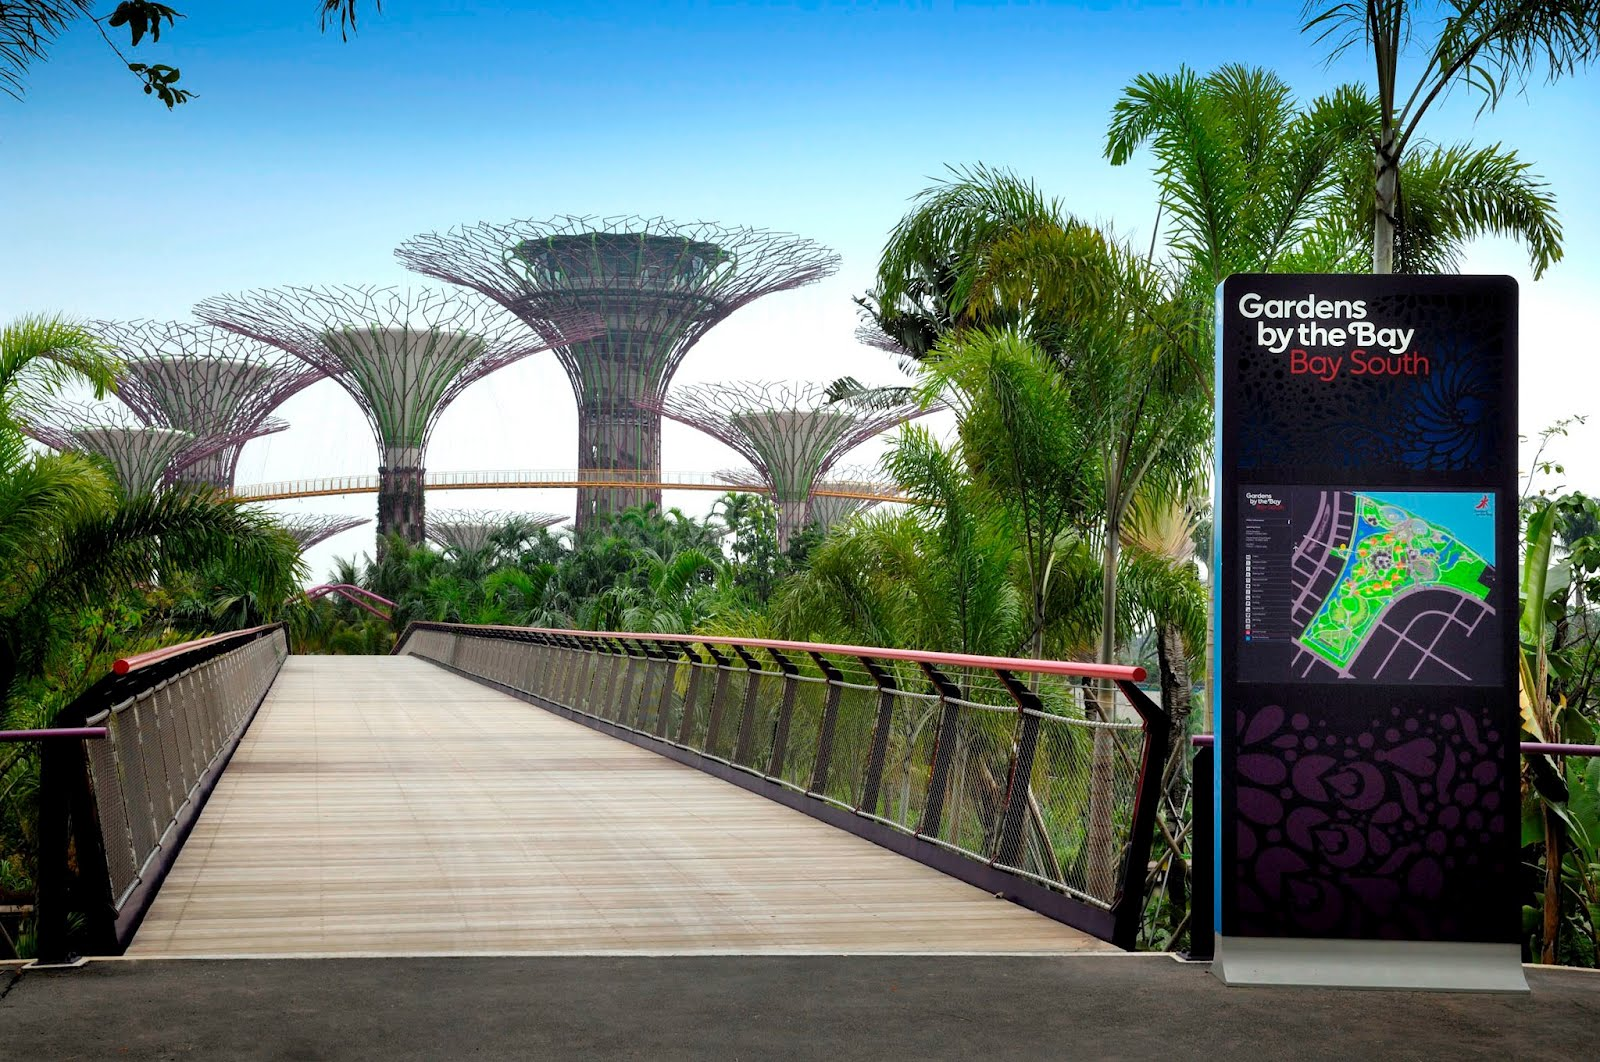 Garden By The Bay Bus owen residents committee 奥云居委会: gardensthe bay - how to